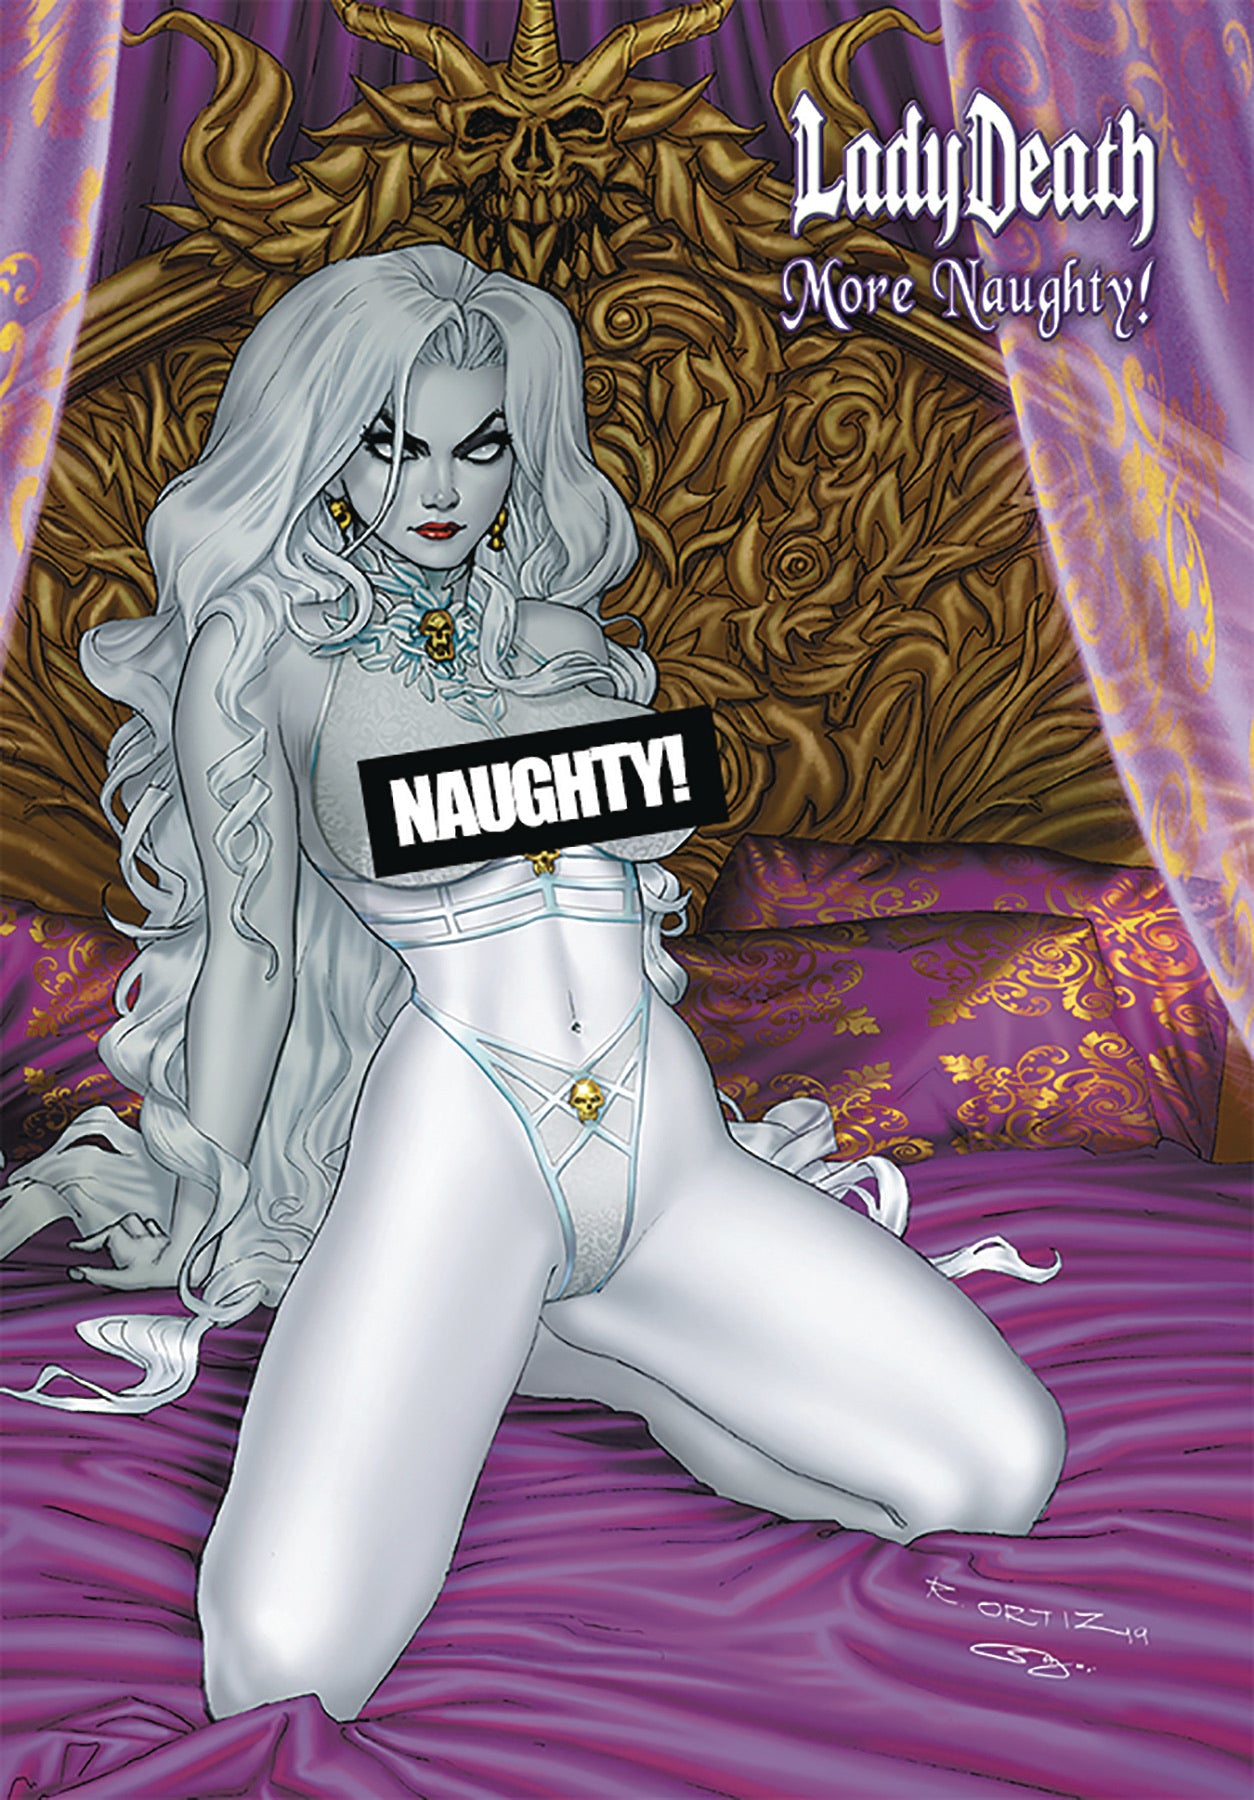 LADY DEATH MORE NAUGHTY ARTBOOK HC Richard Ortiz Cover Art